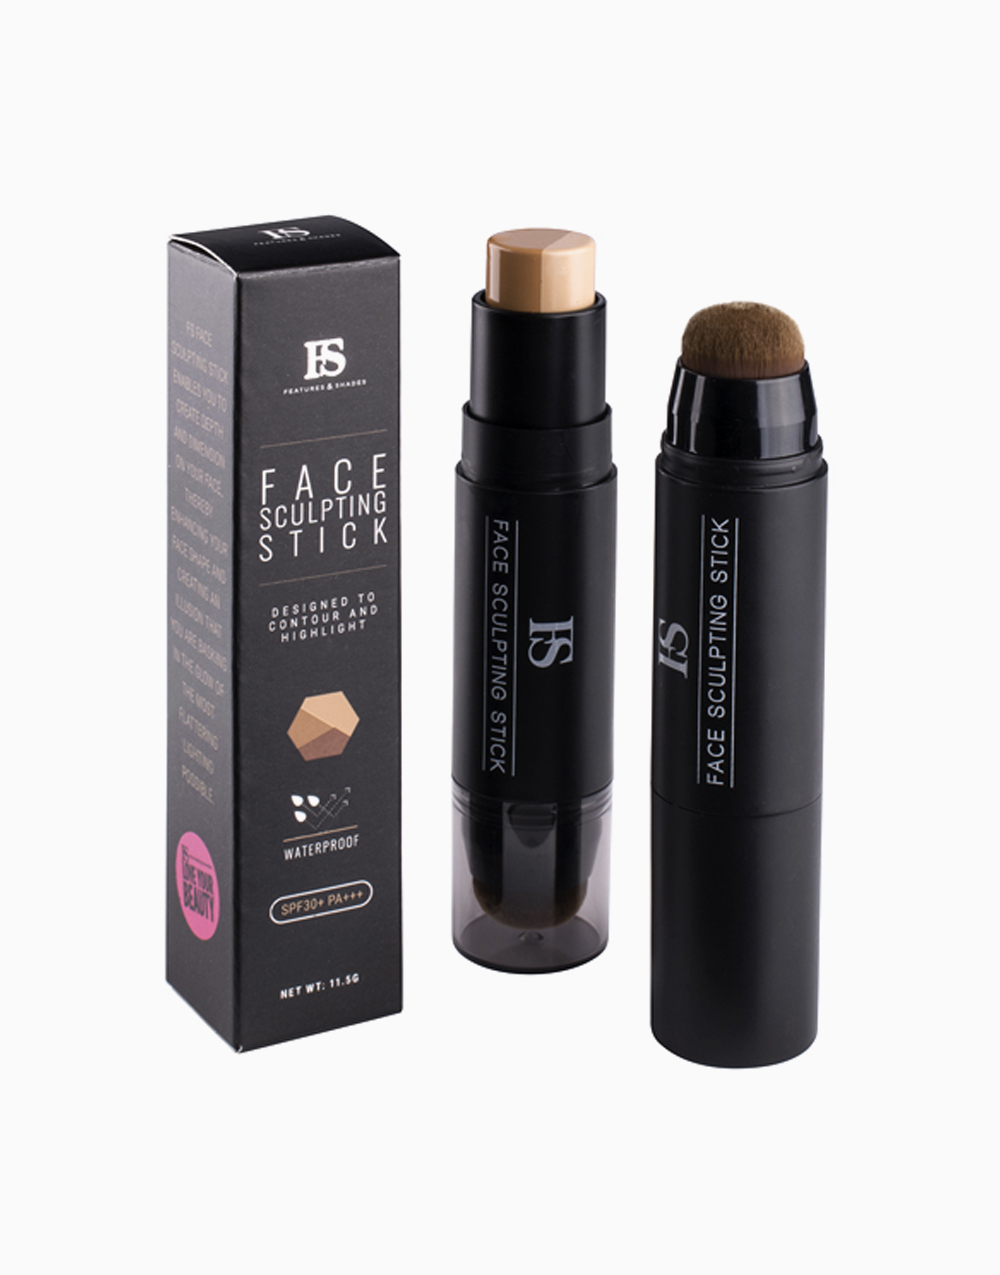 FS Face Sculpting Stick by FS Features & Shades